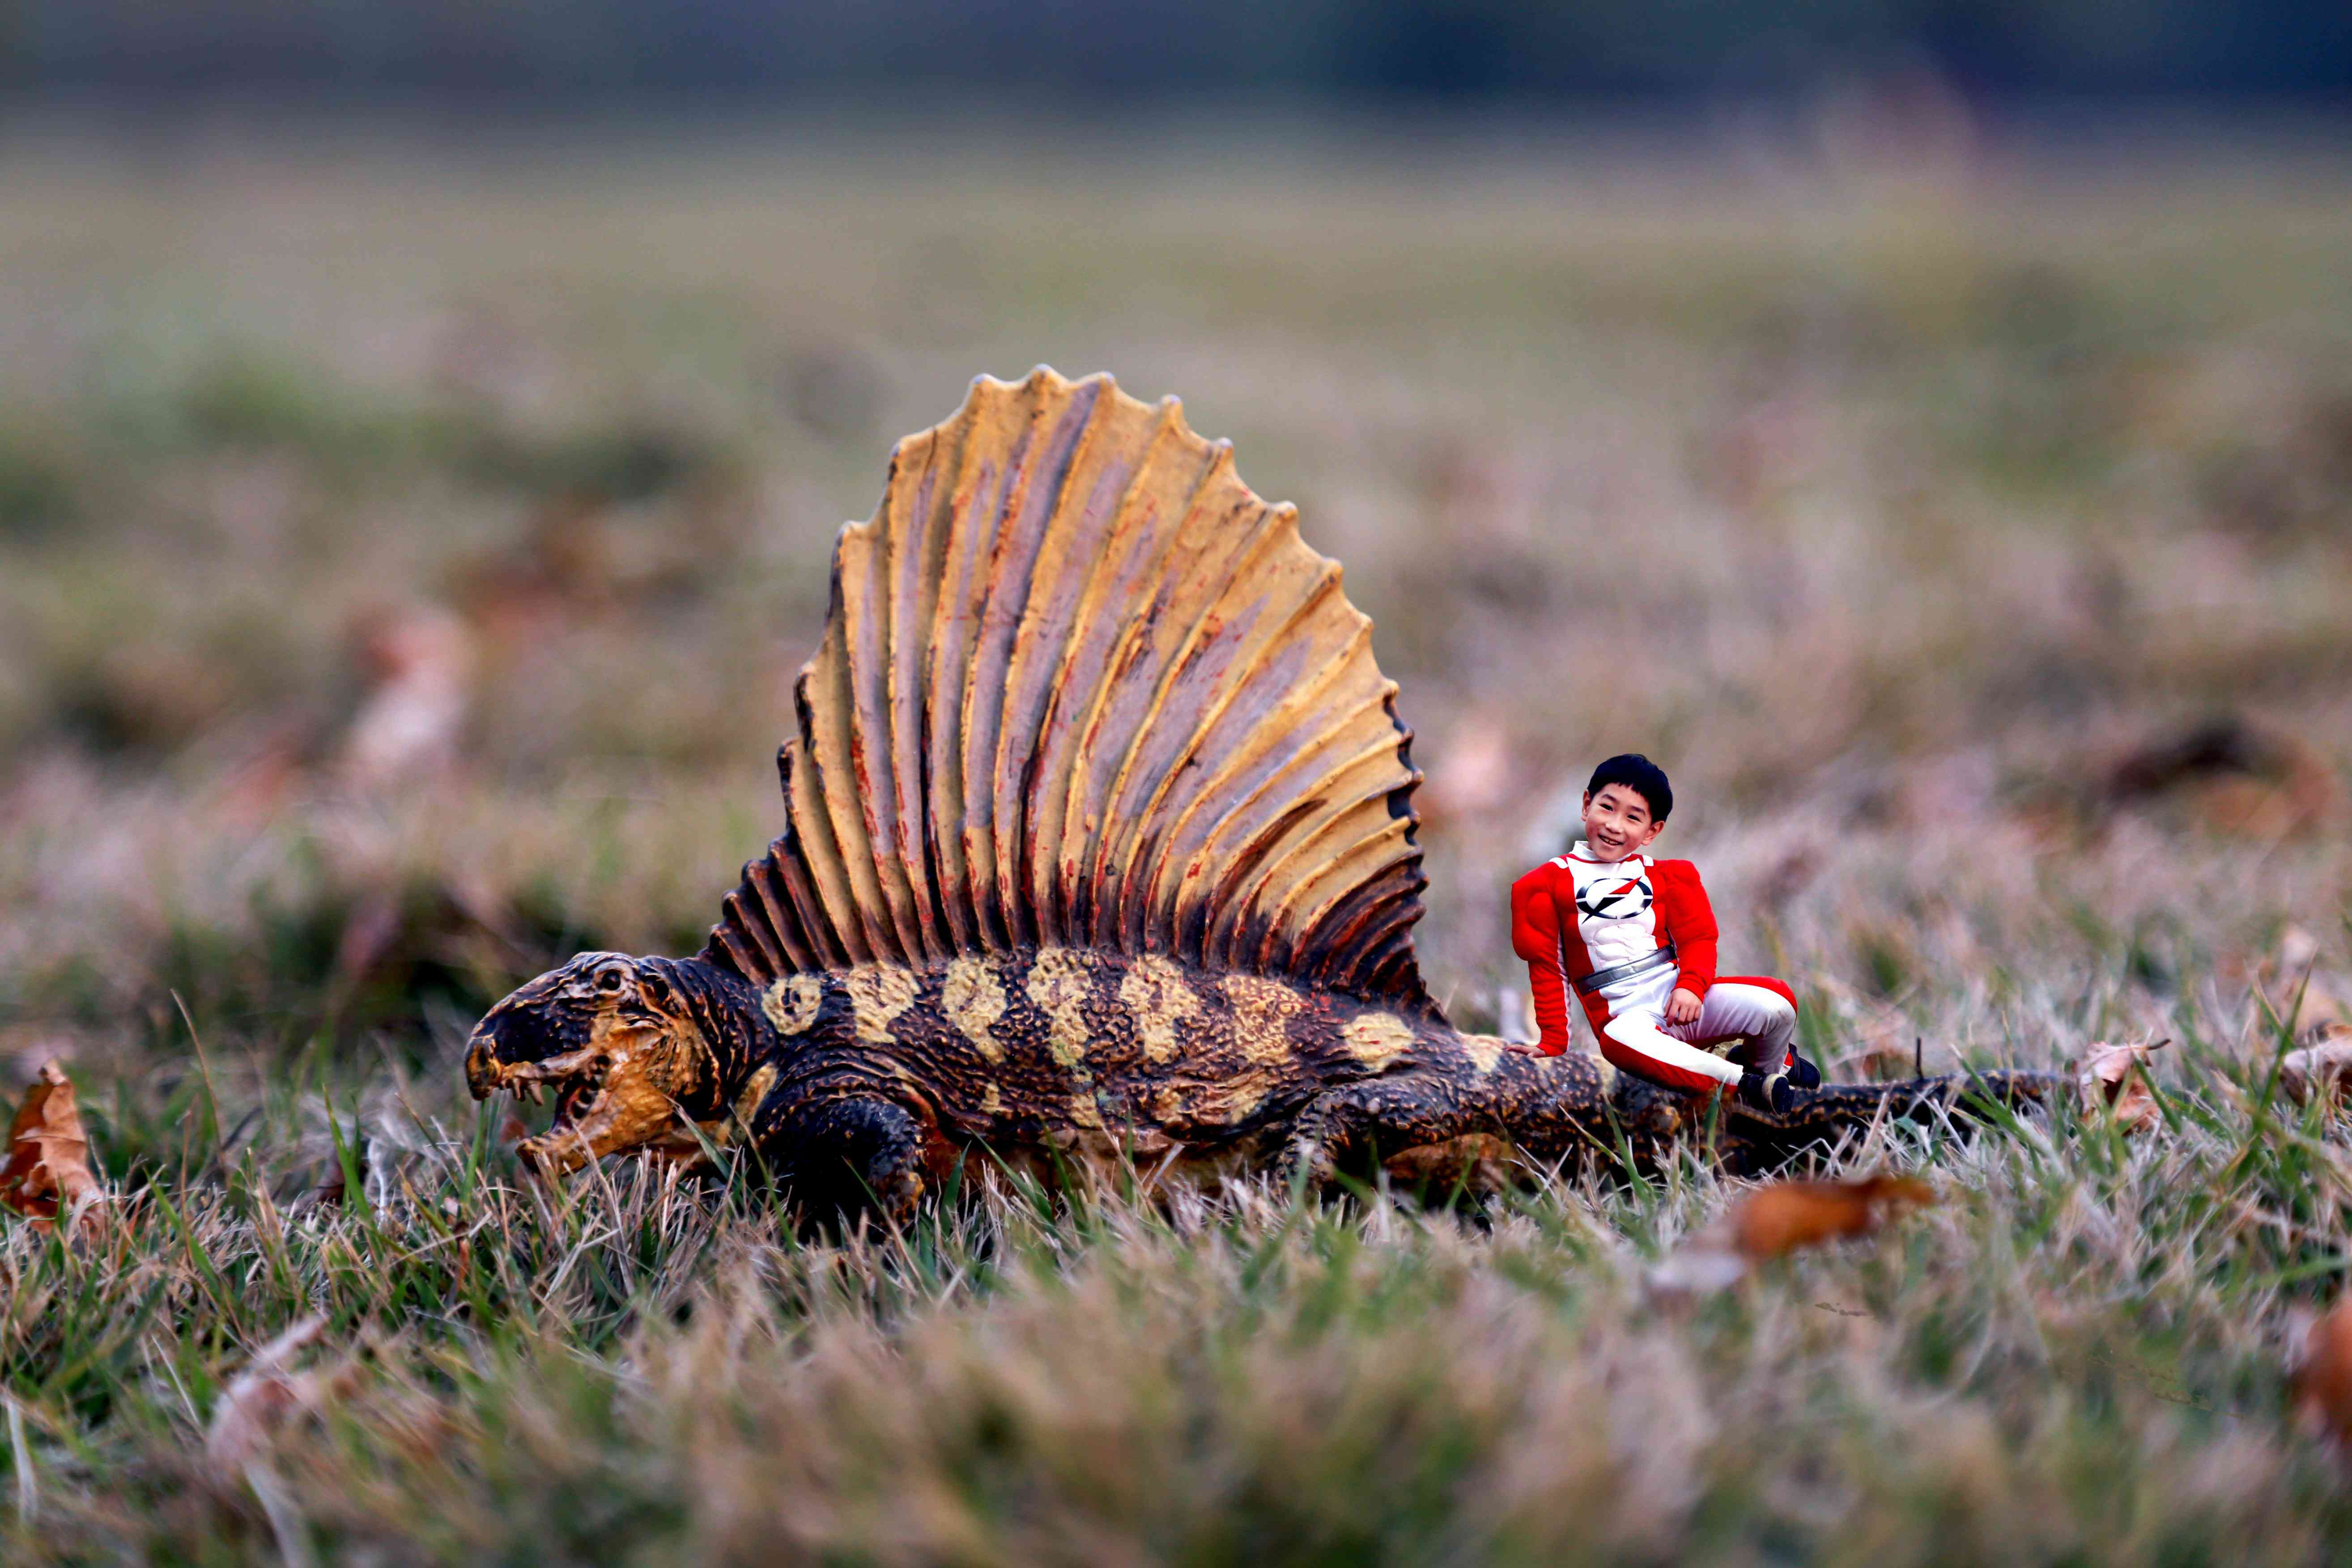 A little boy uses trick photography to pose with a dimetrodon